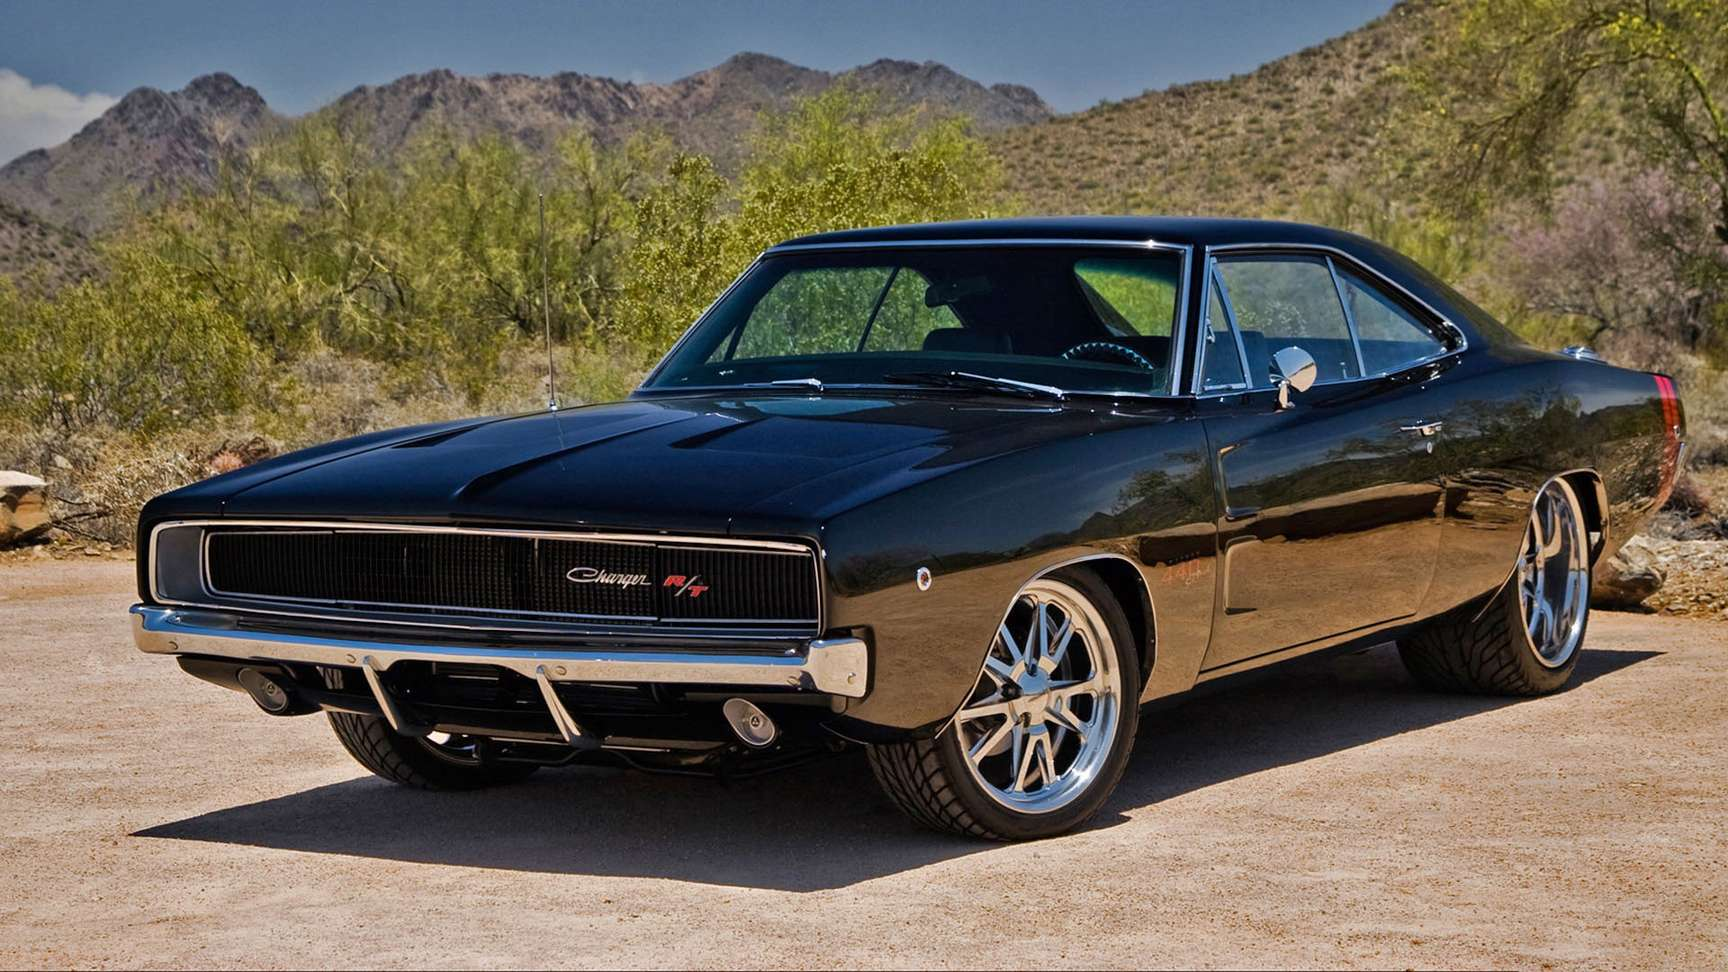 Dodge Charger RT #8589084